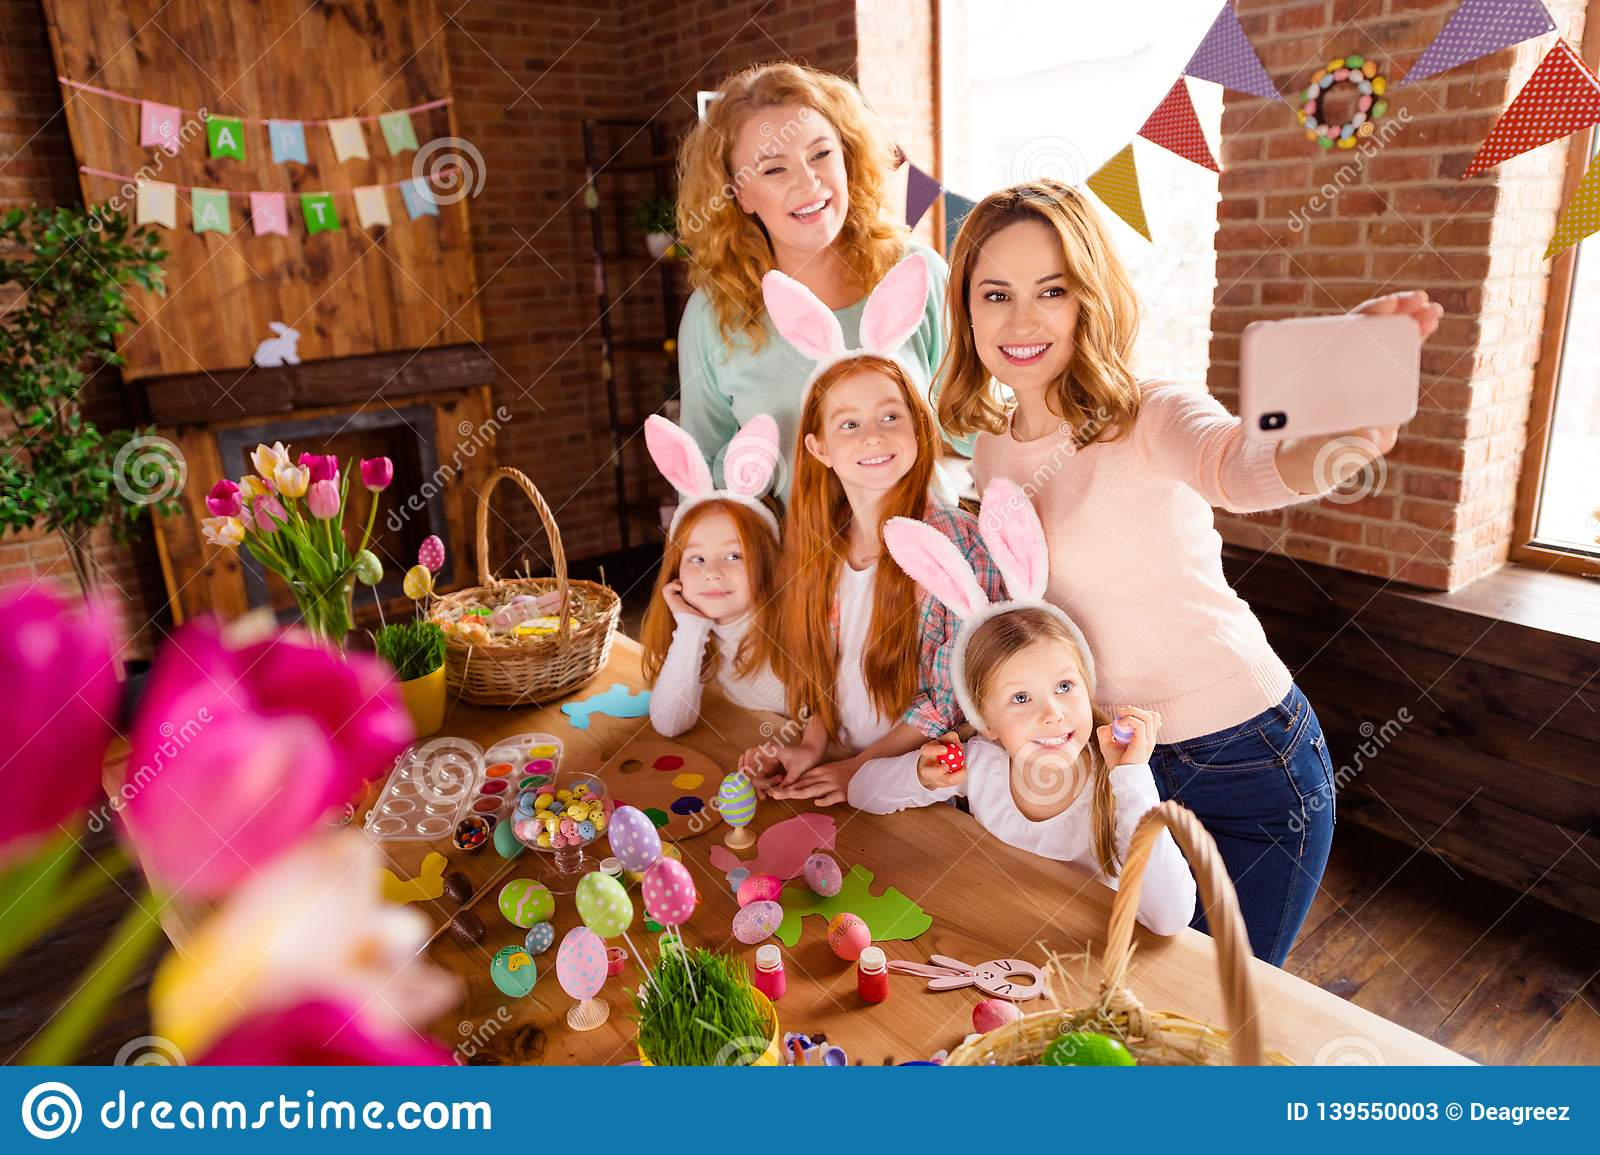 Close up photo foxy three small girls children day easter two mommy pretty table full handmade craft big wooden have